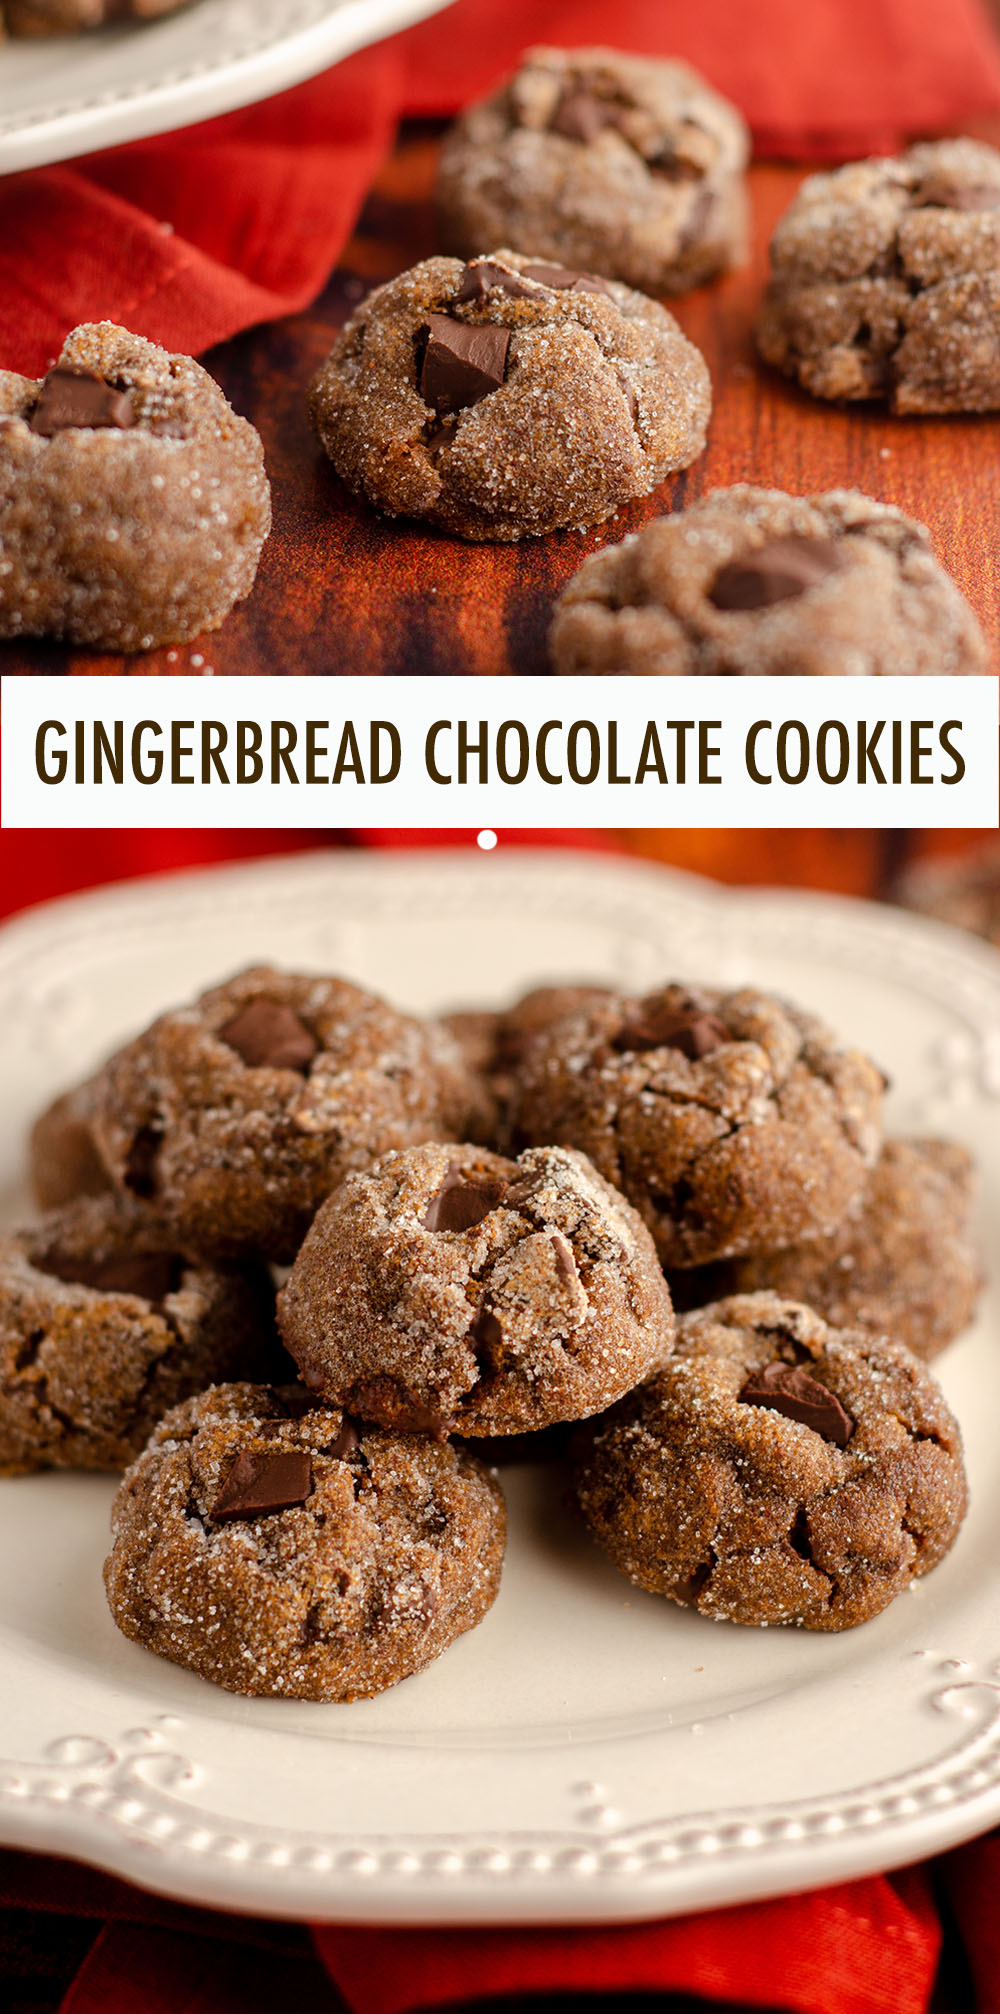 Spicy gingerbread chocolate cookies filled with chunks of chocolate and rolled in a crunchy sugar coating.